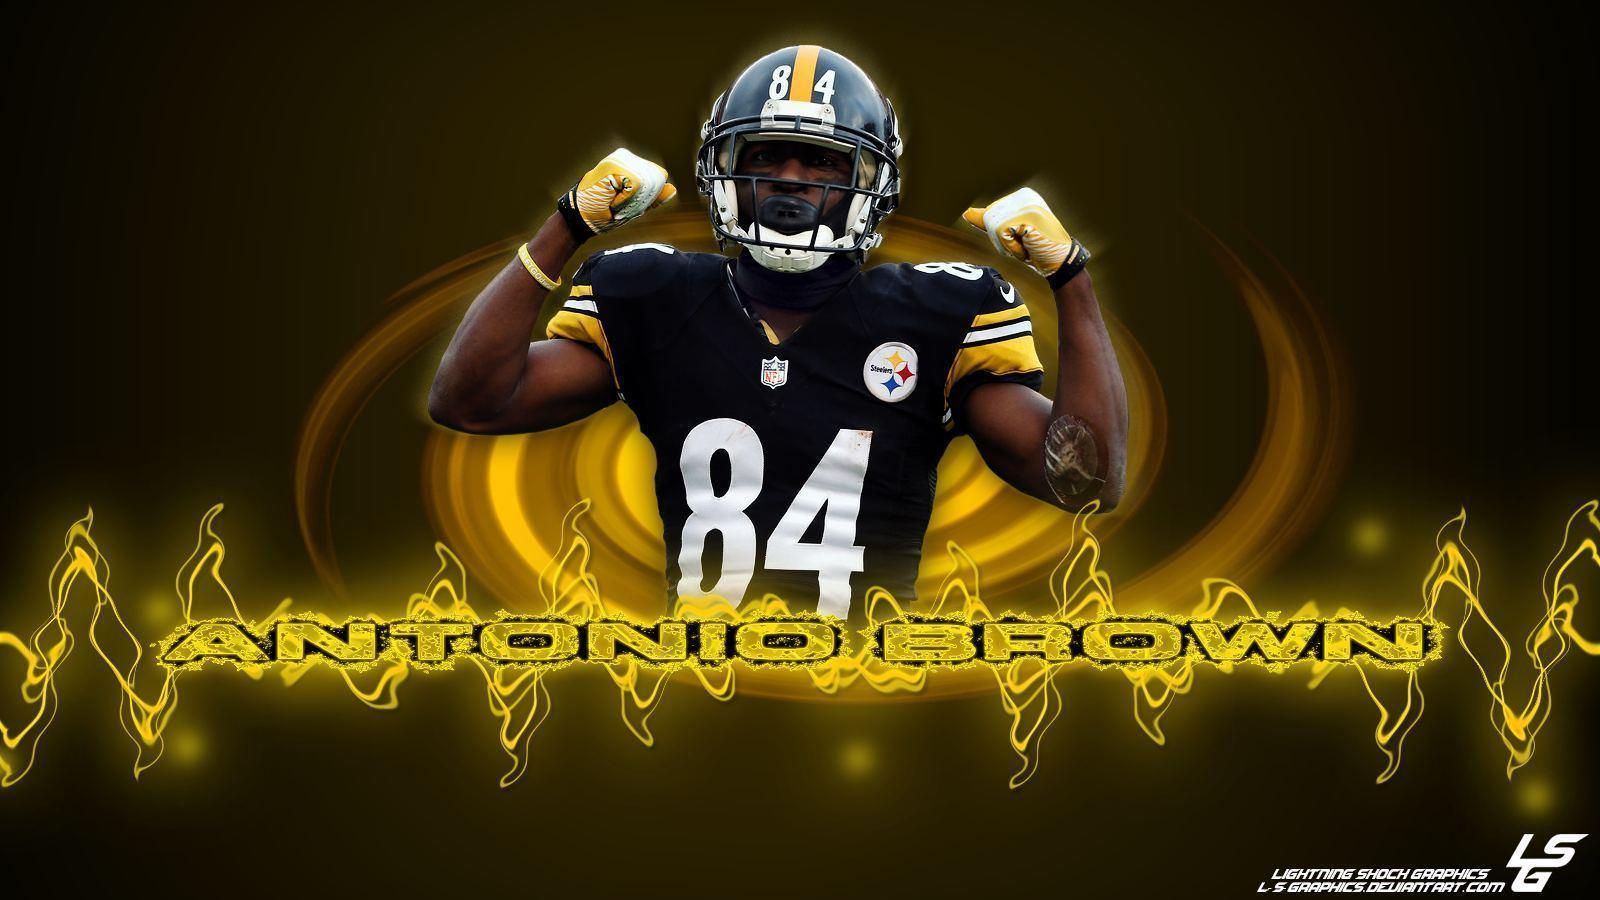 antonio brown wallpaper  Antonio Brown Wallpapers - Wallpaper Cave